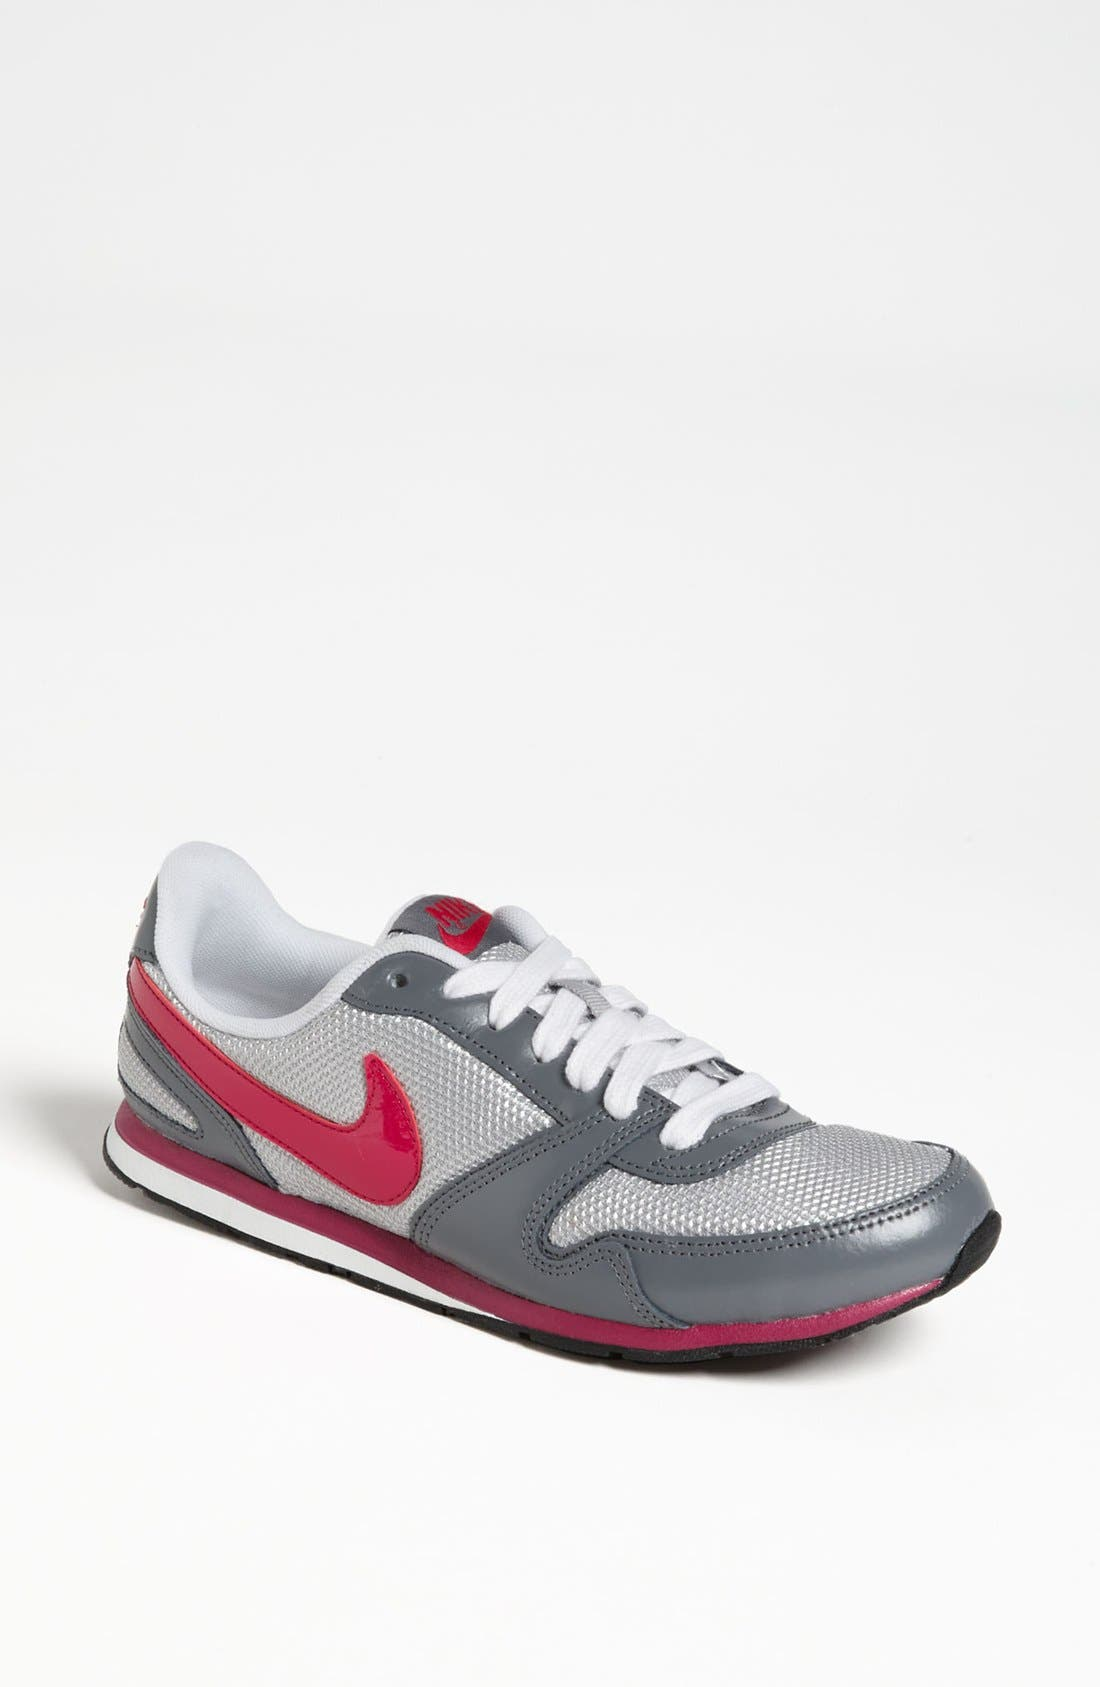 Main Image - Nike 'Eclipse II' Sneaker (Women)